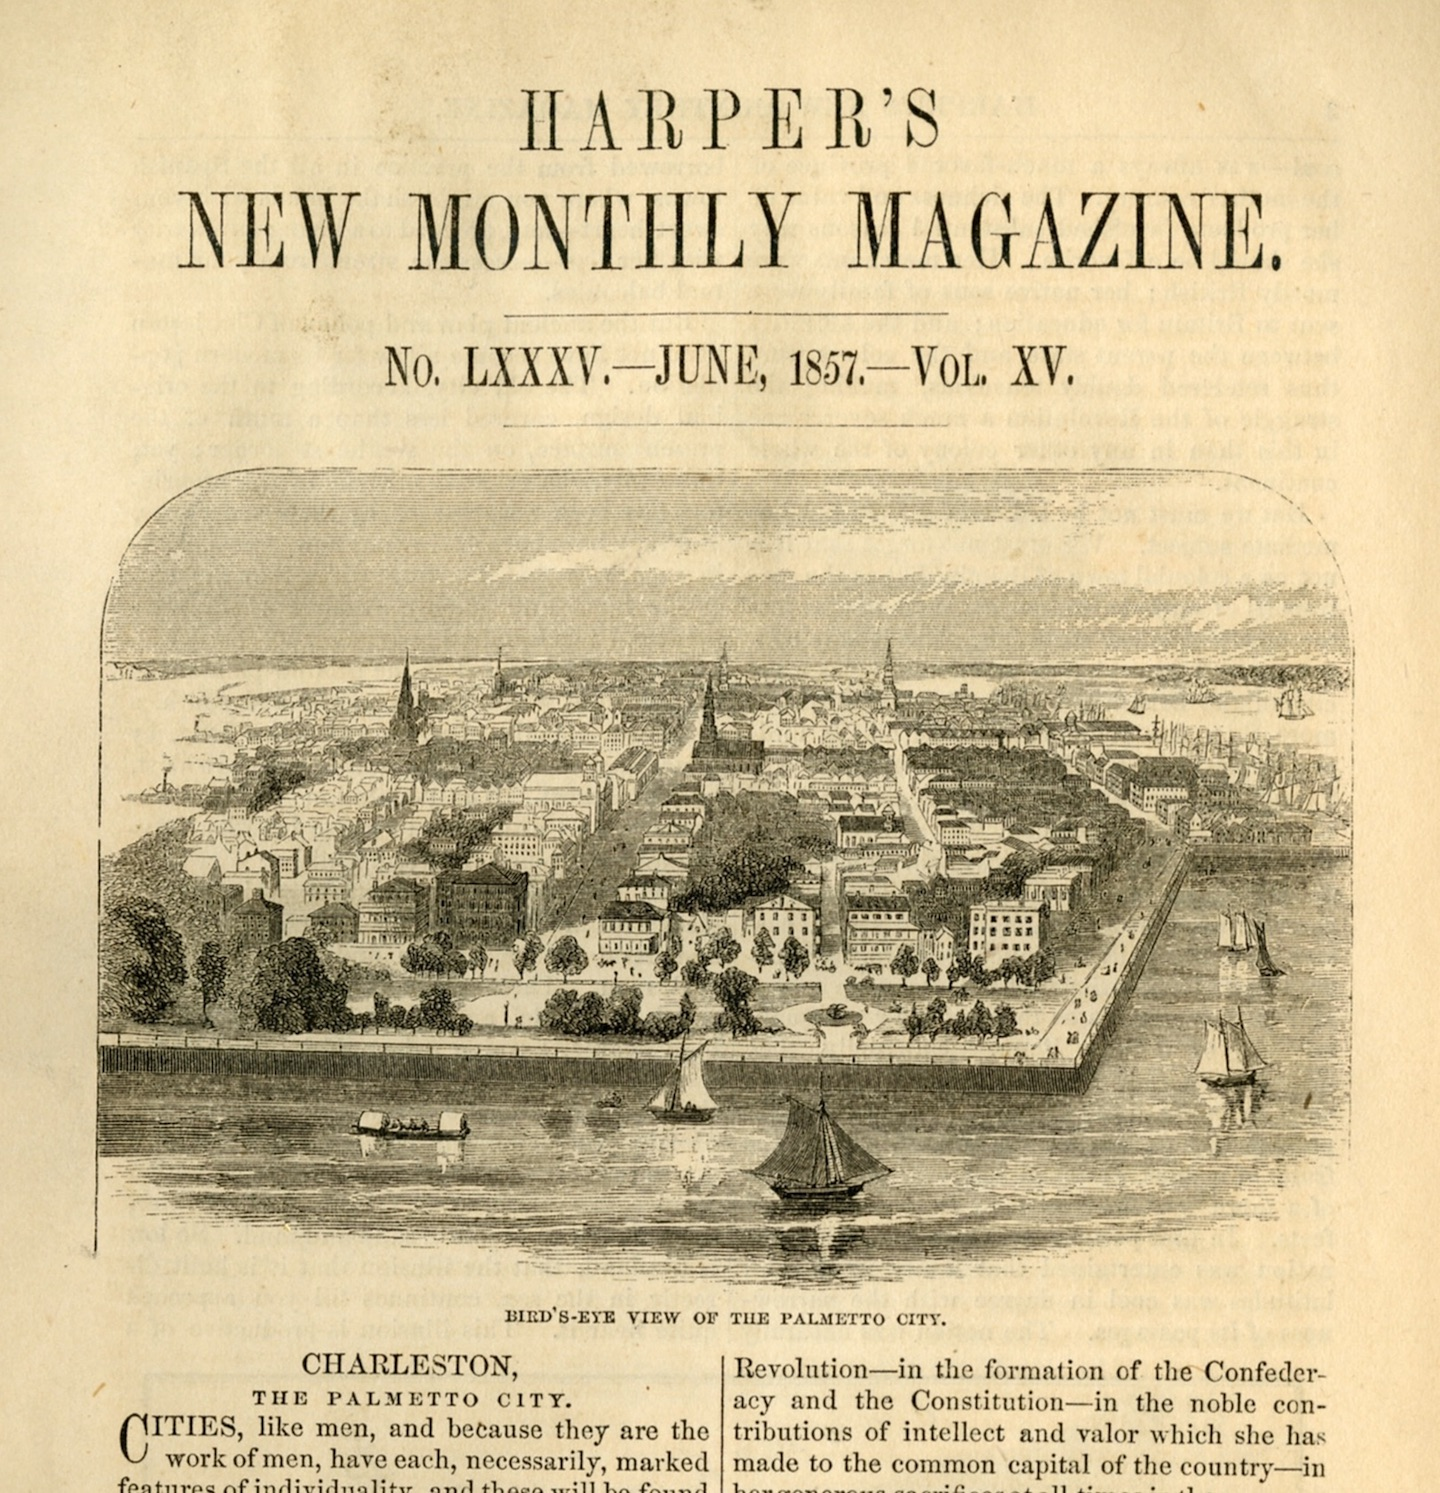 Palmetto City title page from 1857